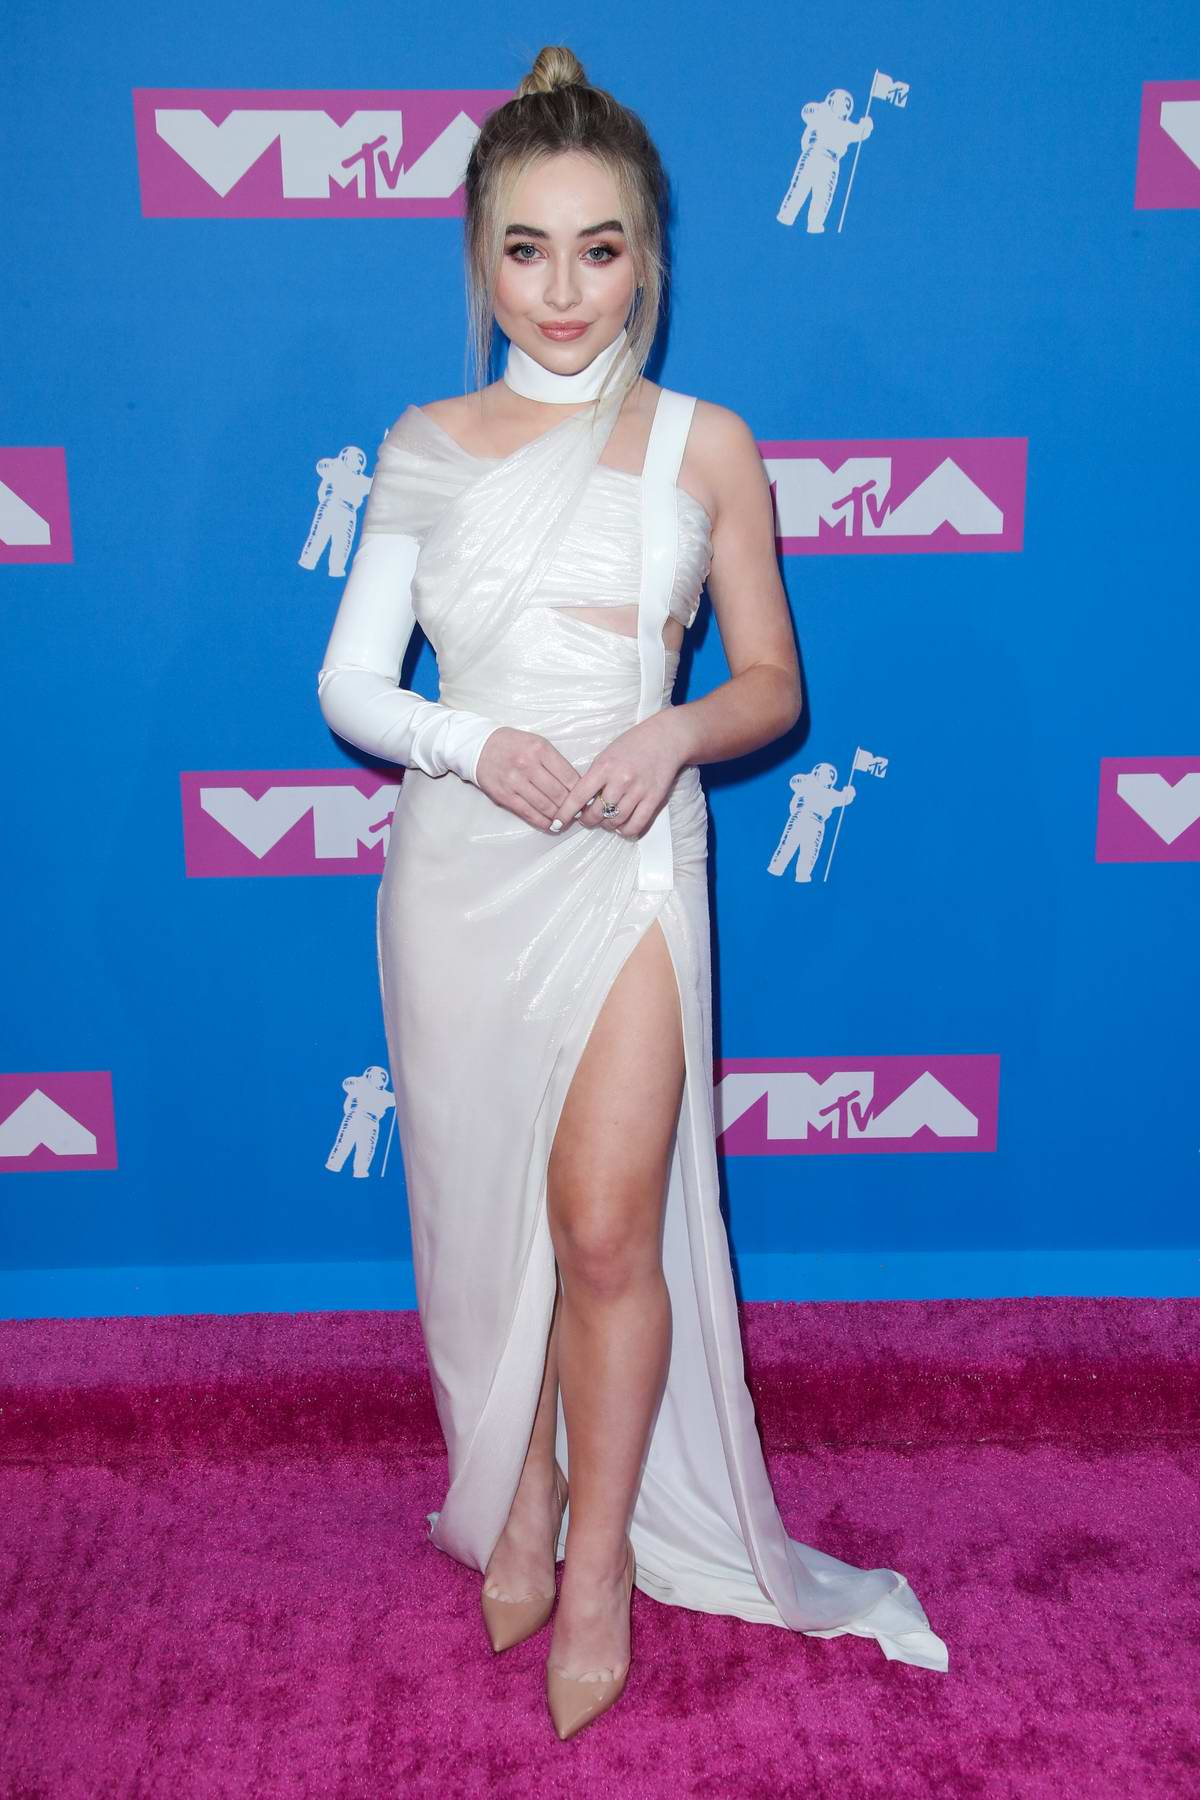 Sabrina Carpenter attends 2018 MTV Video Music Awards (MTV VMA 2018) at Radio City Music Hall in New York City